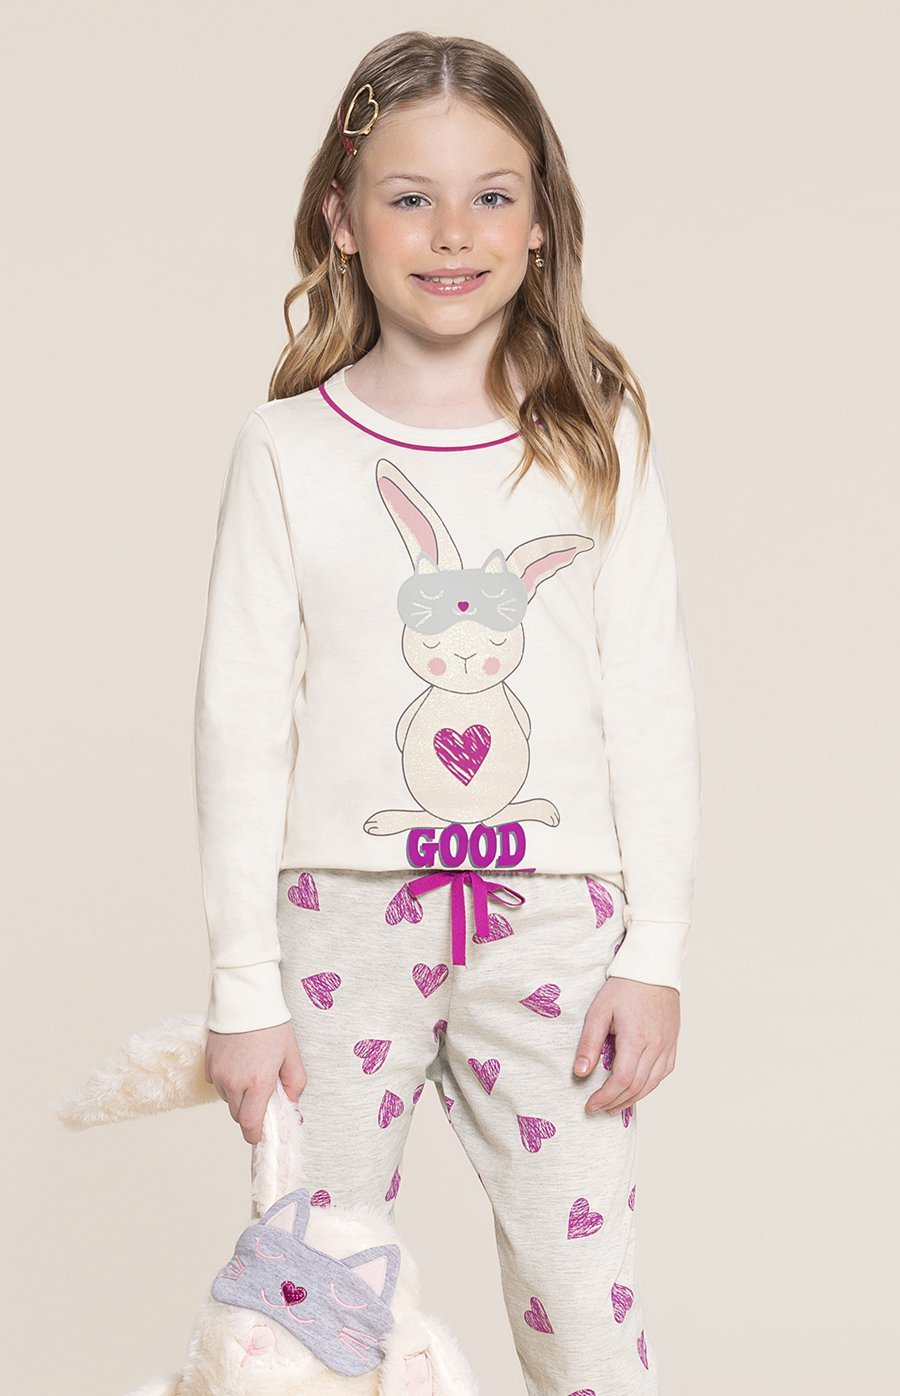 Pijama Infantil 1/2 Malha Good Night Inverno 2020 SWEET STORIES